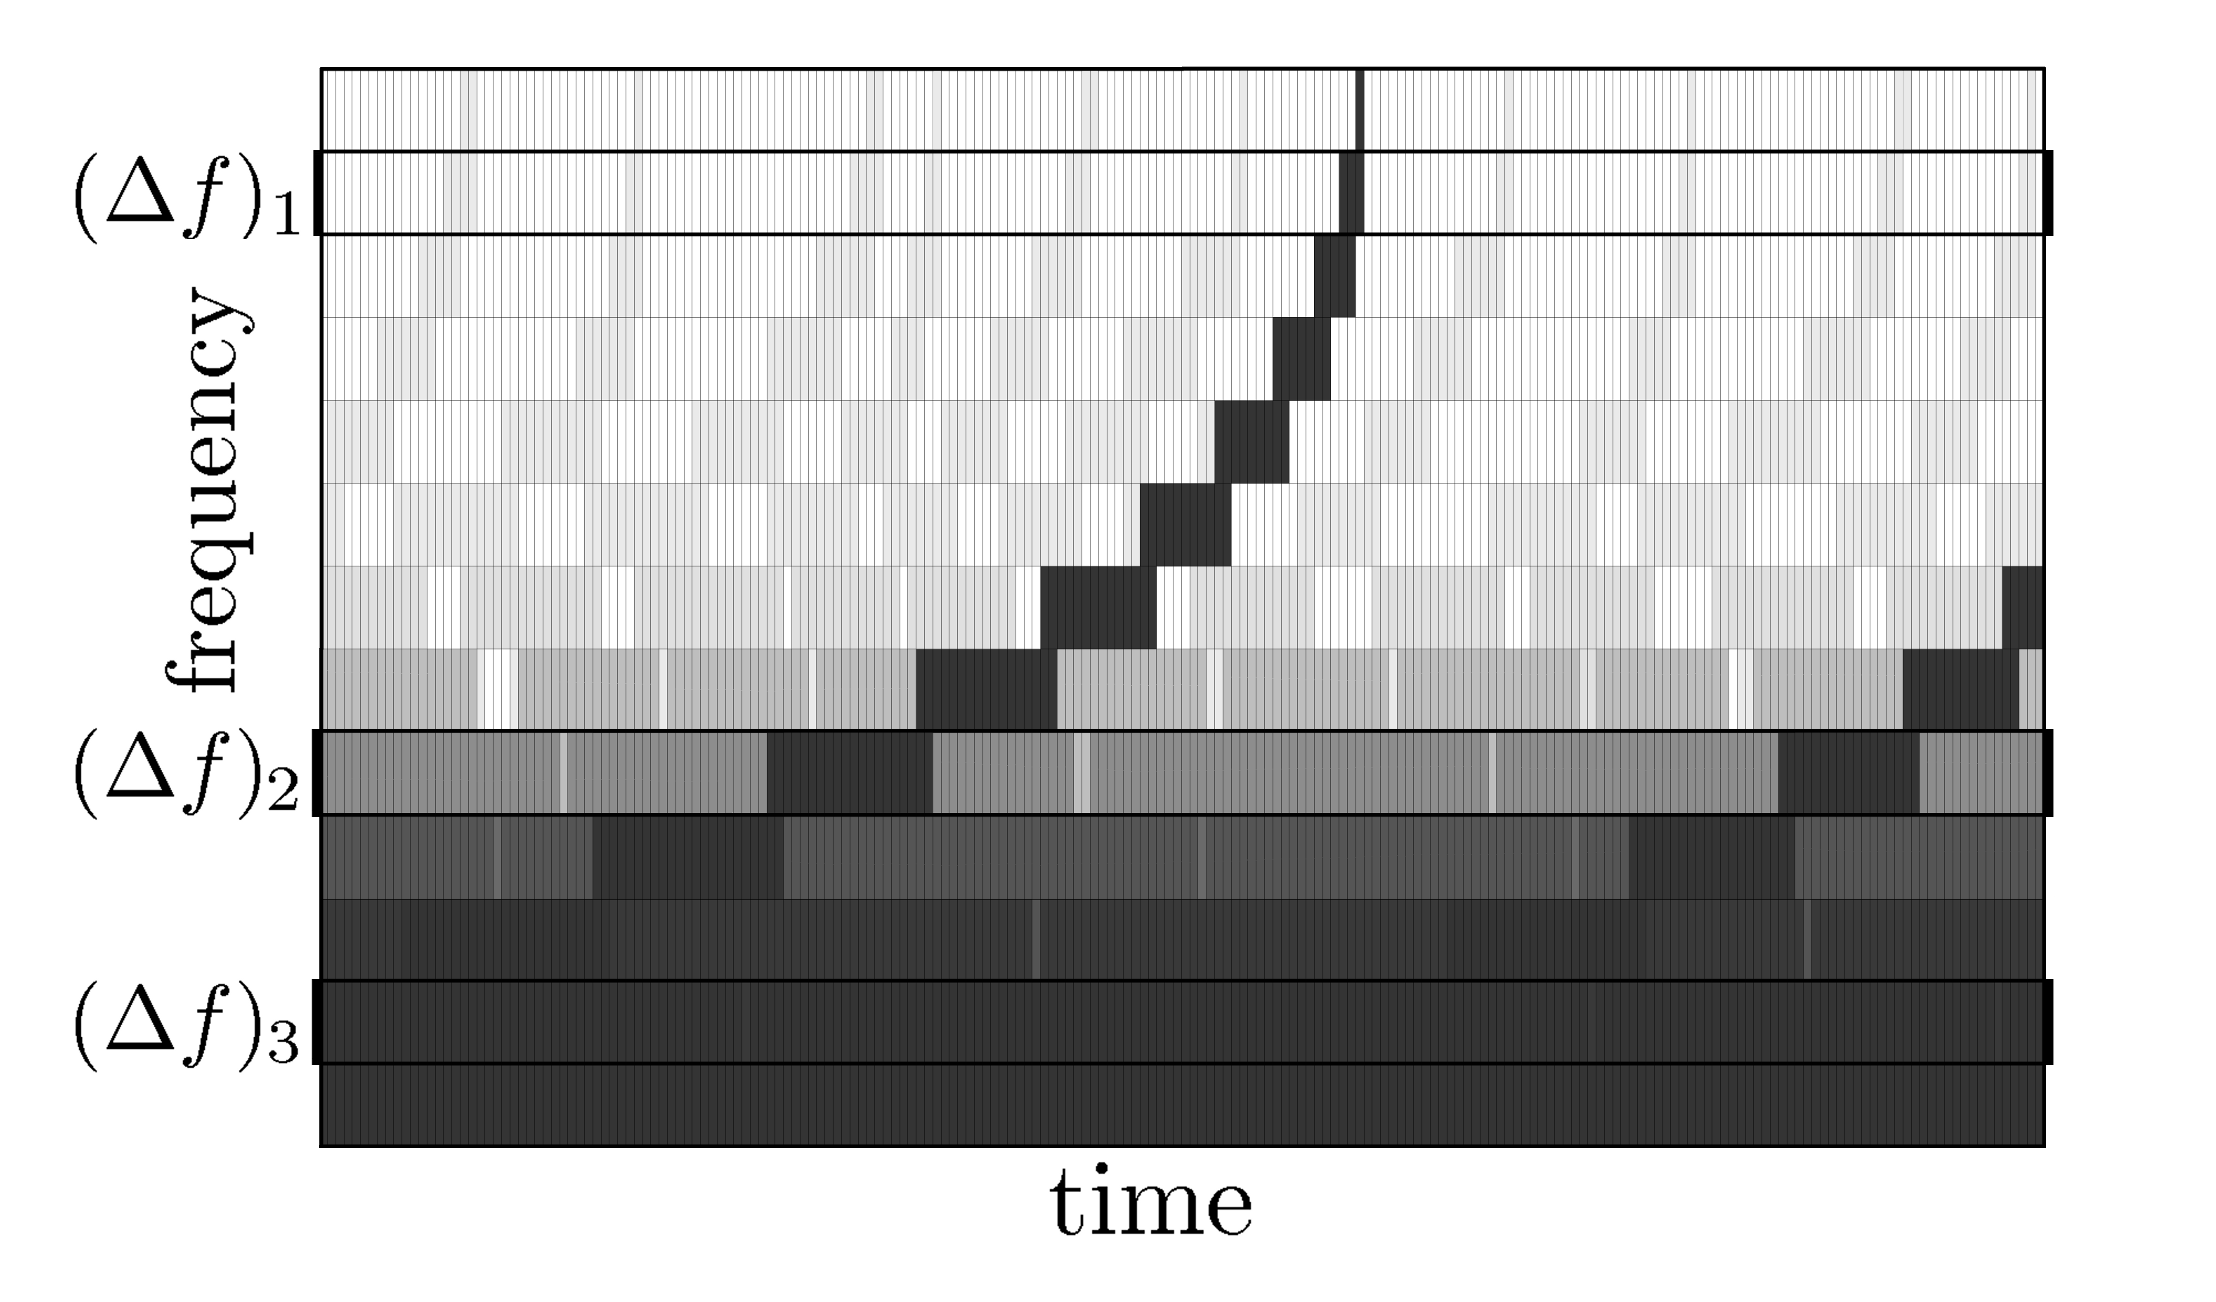 Observed frequency versus time. Each line represents the evolution of one signal (like the one produced by a binary). Closer signals, as well as the superposition of many signals, are plotted darker than distant individual signals. Three frequency bins are distinguished: in